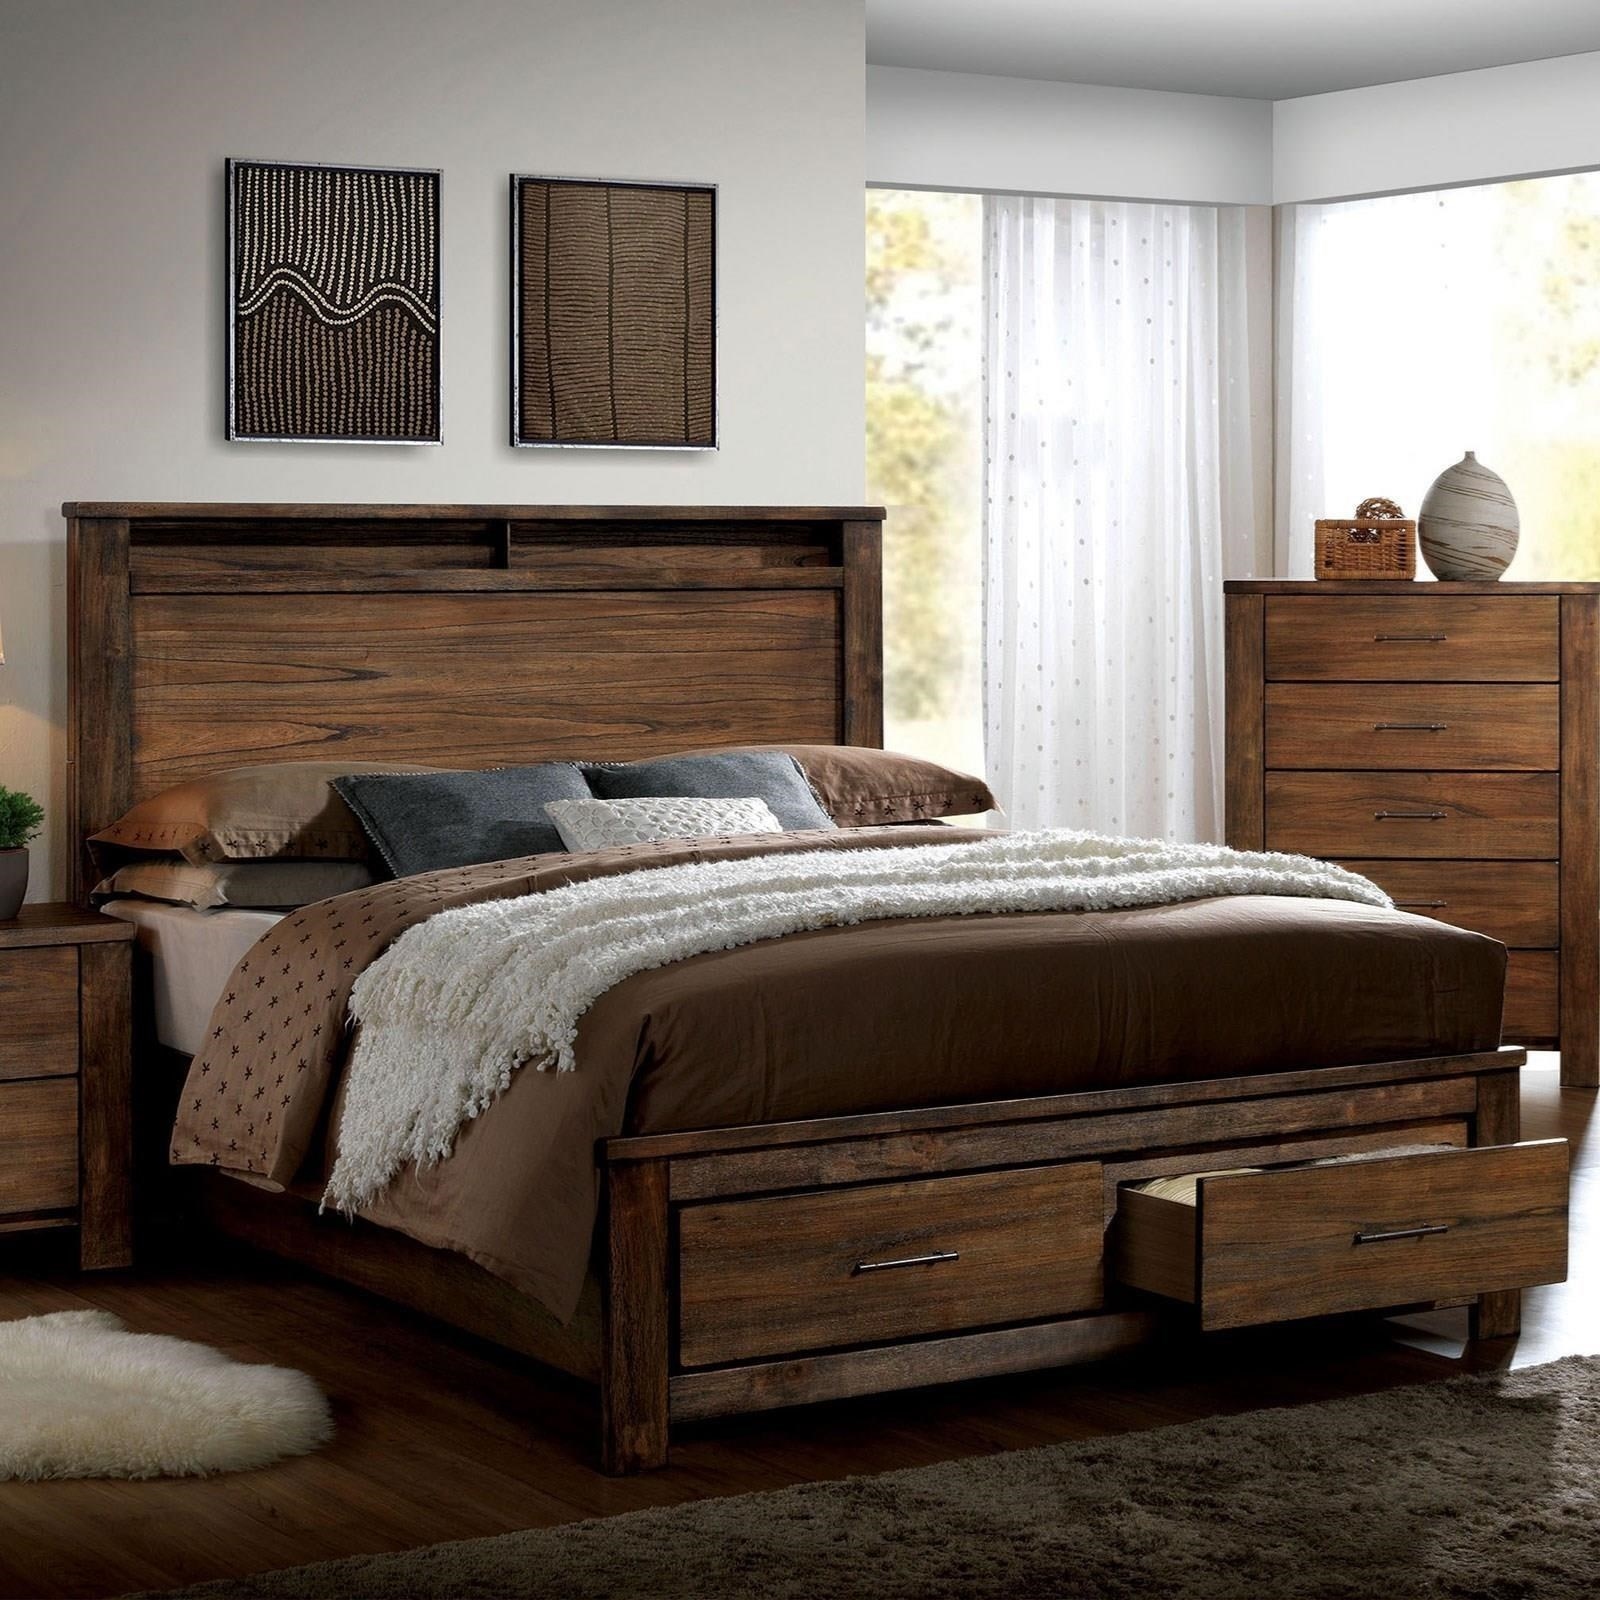 Elkton Queen Bed at Household Furniture